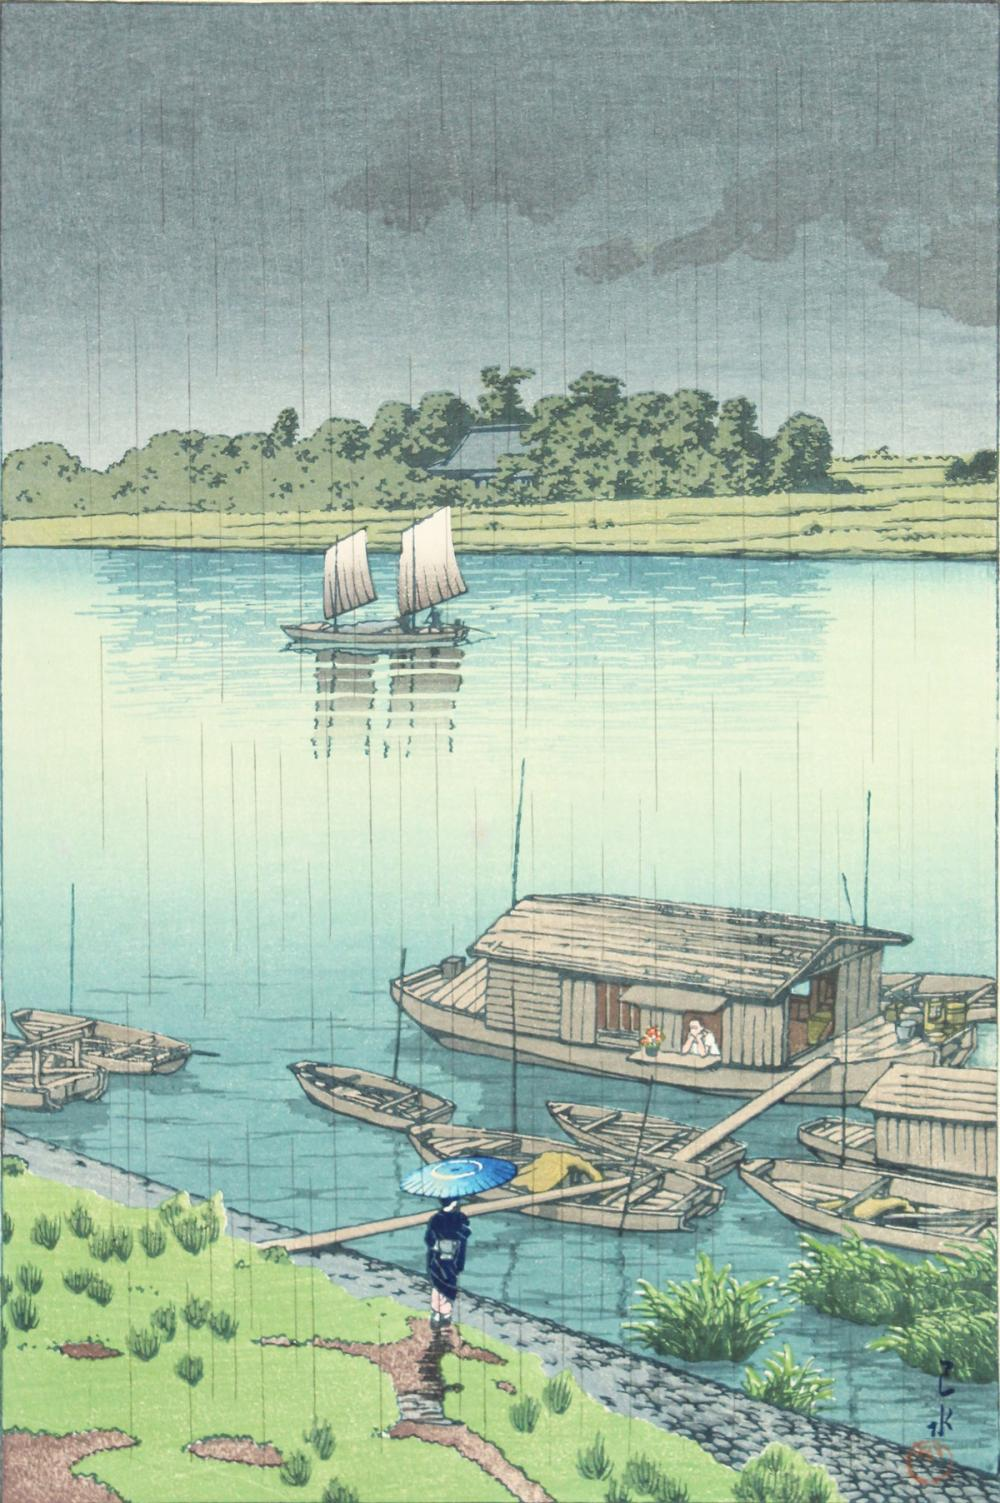 Kawase Hasui Artwork for Sale at Online Auction | Kawase Hasui Biography &  Info